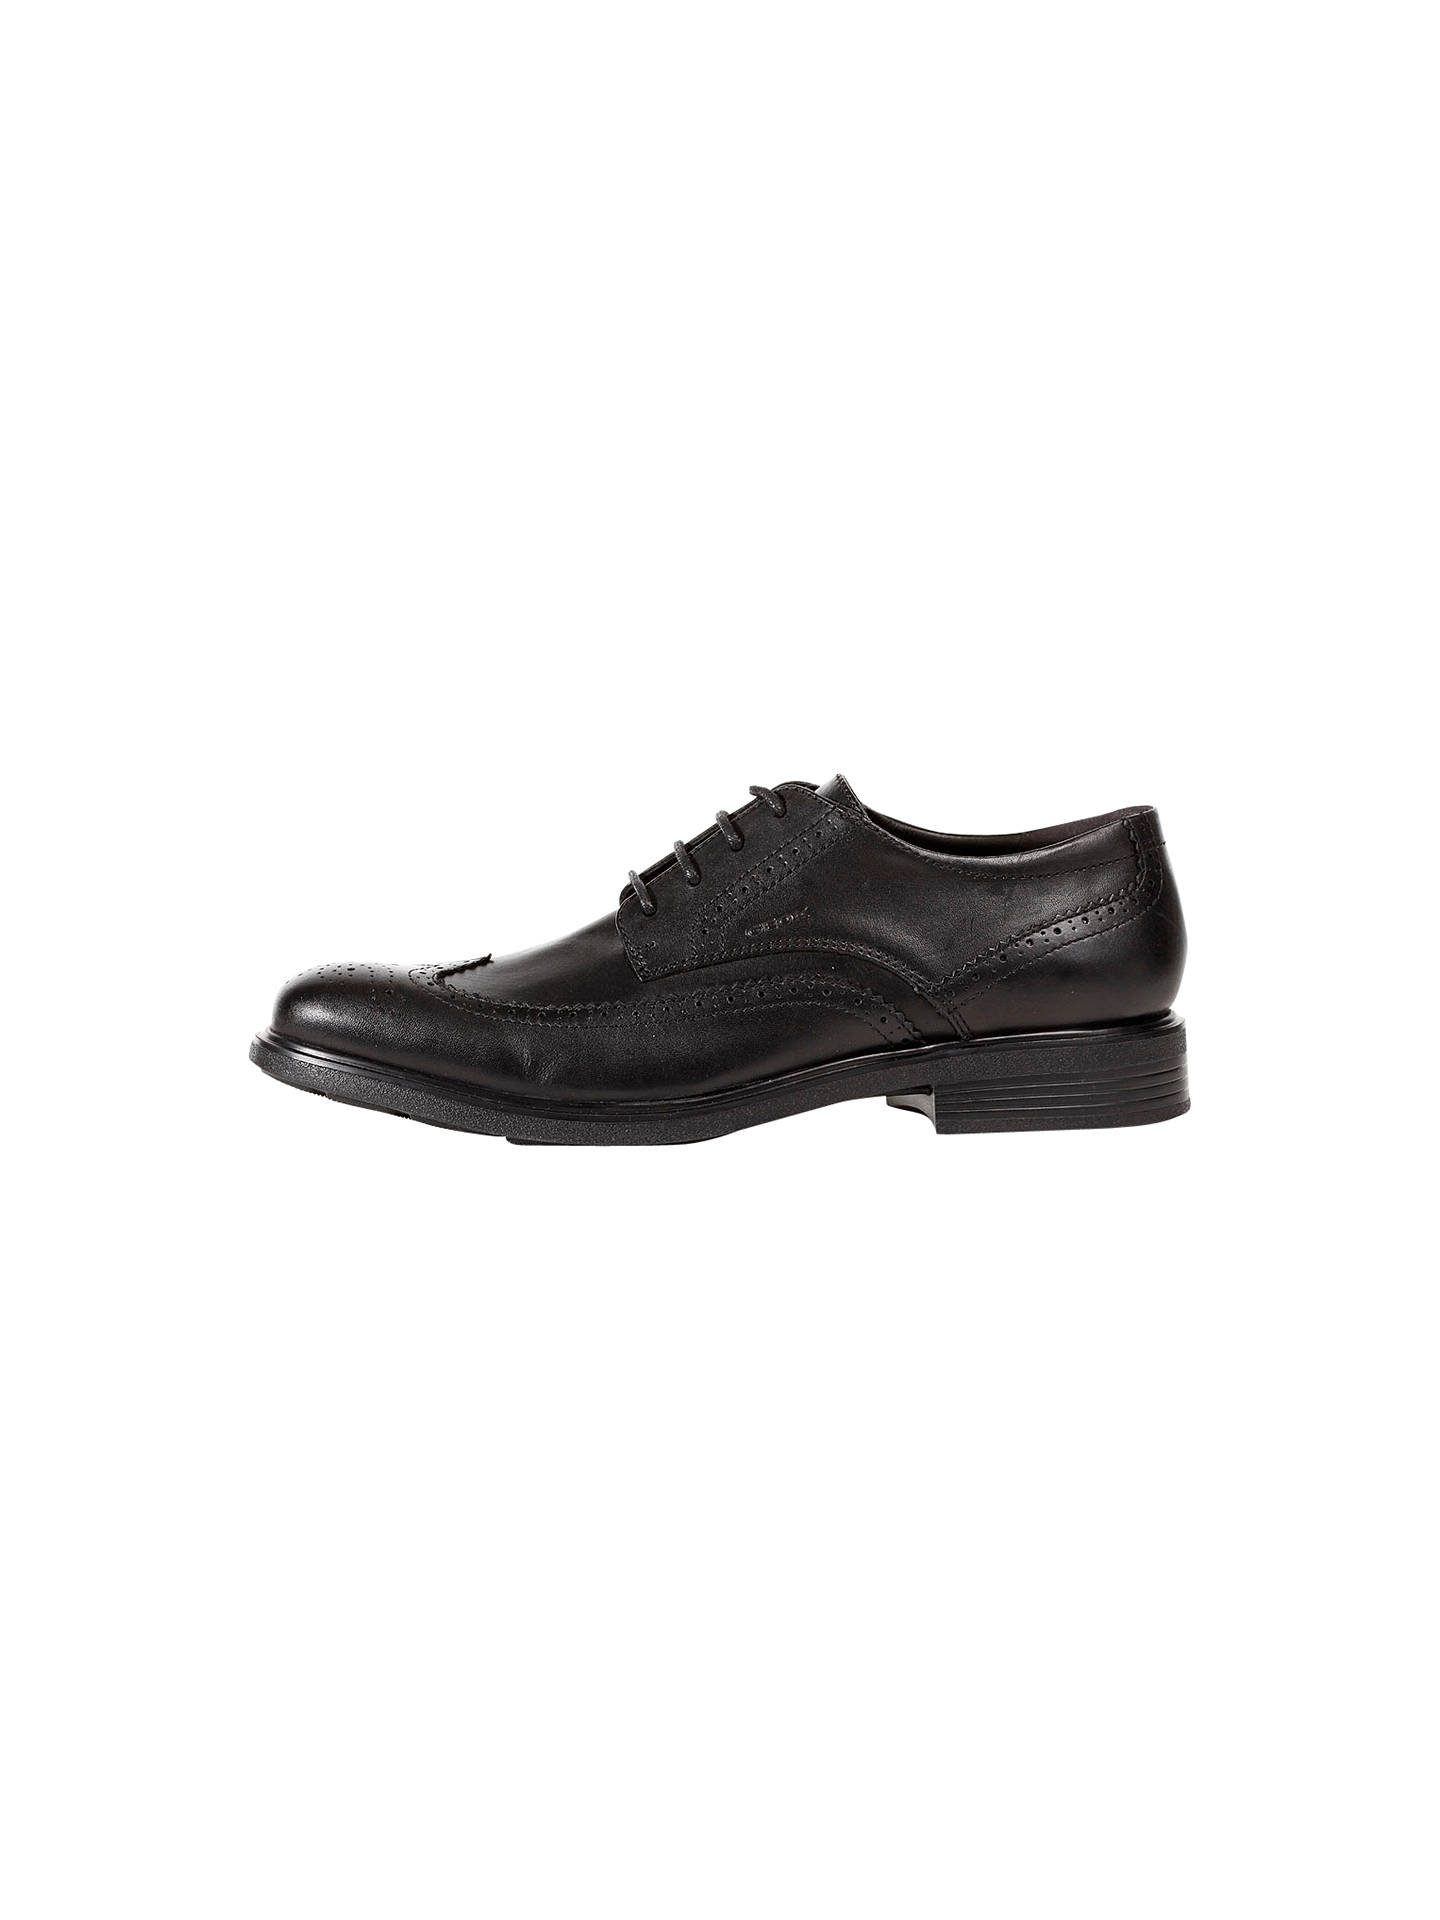 save off b7647 cdc34 Geox Dublin Brogue Derby Shoes, Black at John Lewis & Partners